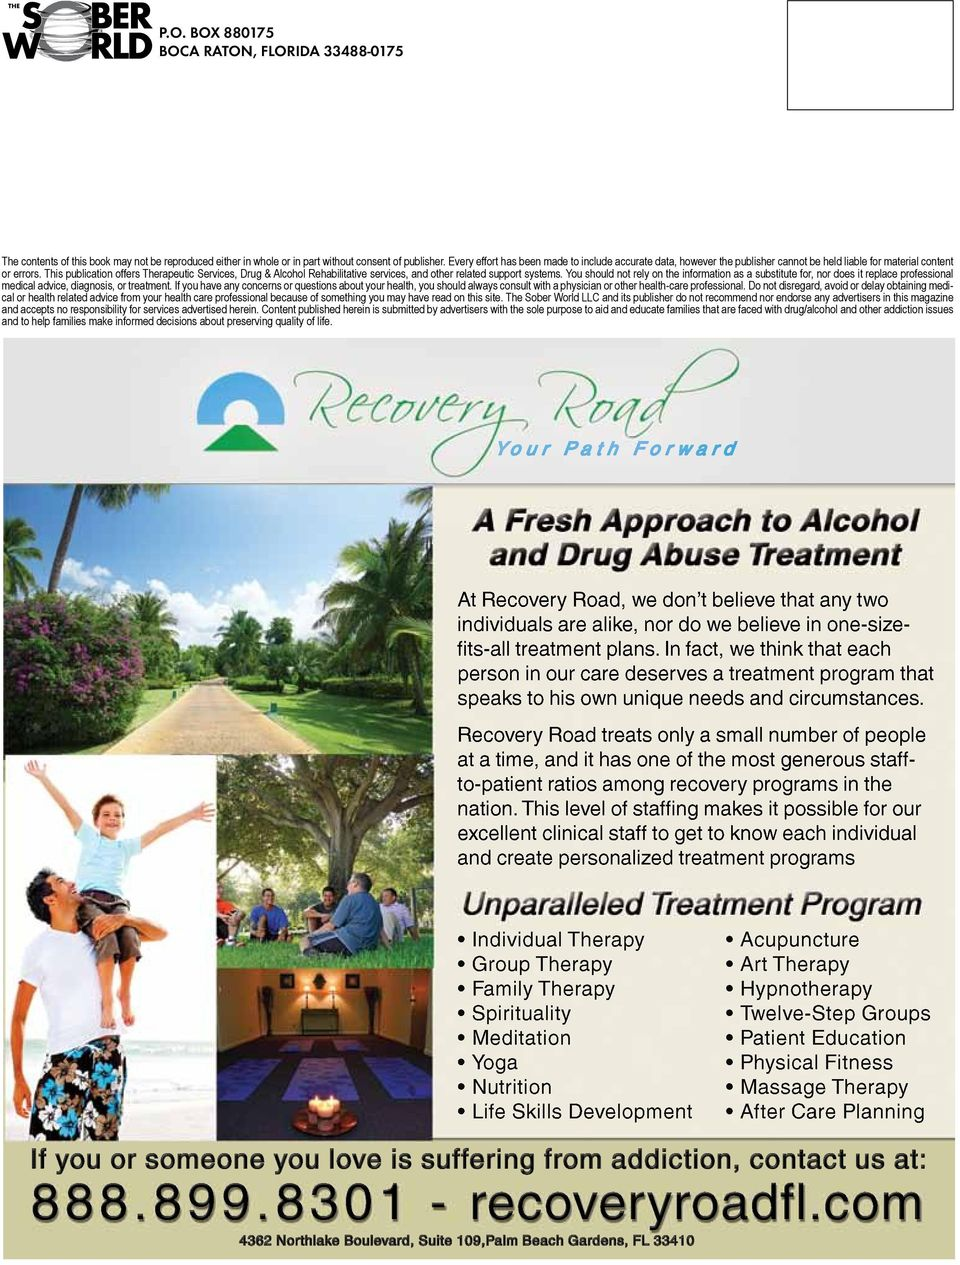 This publication offers Therapeutic Services, Drug & Alcohol Rehabilitative services, and other related support systems.